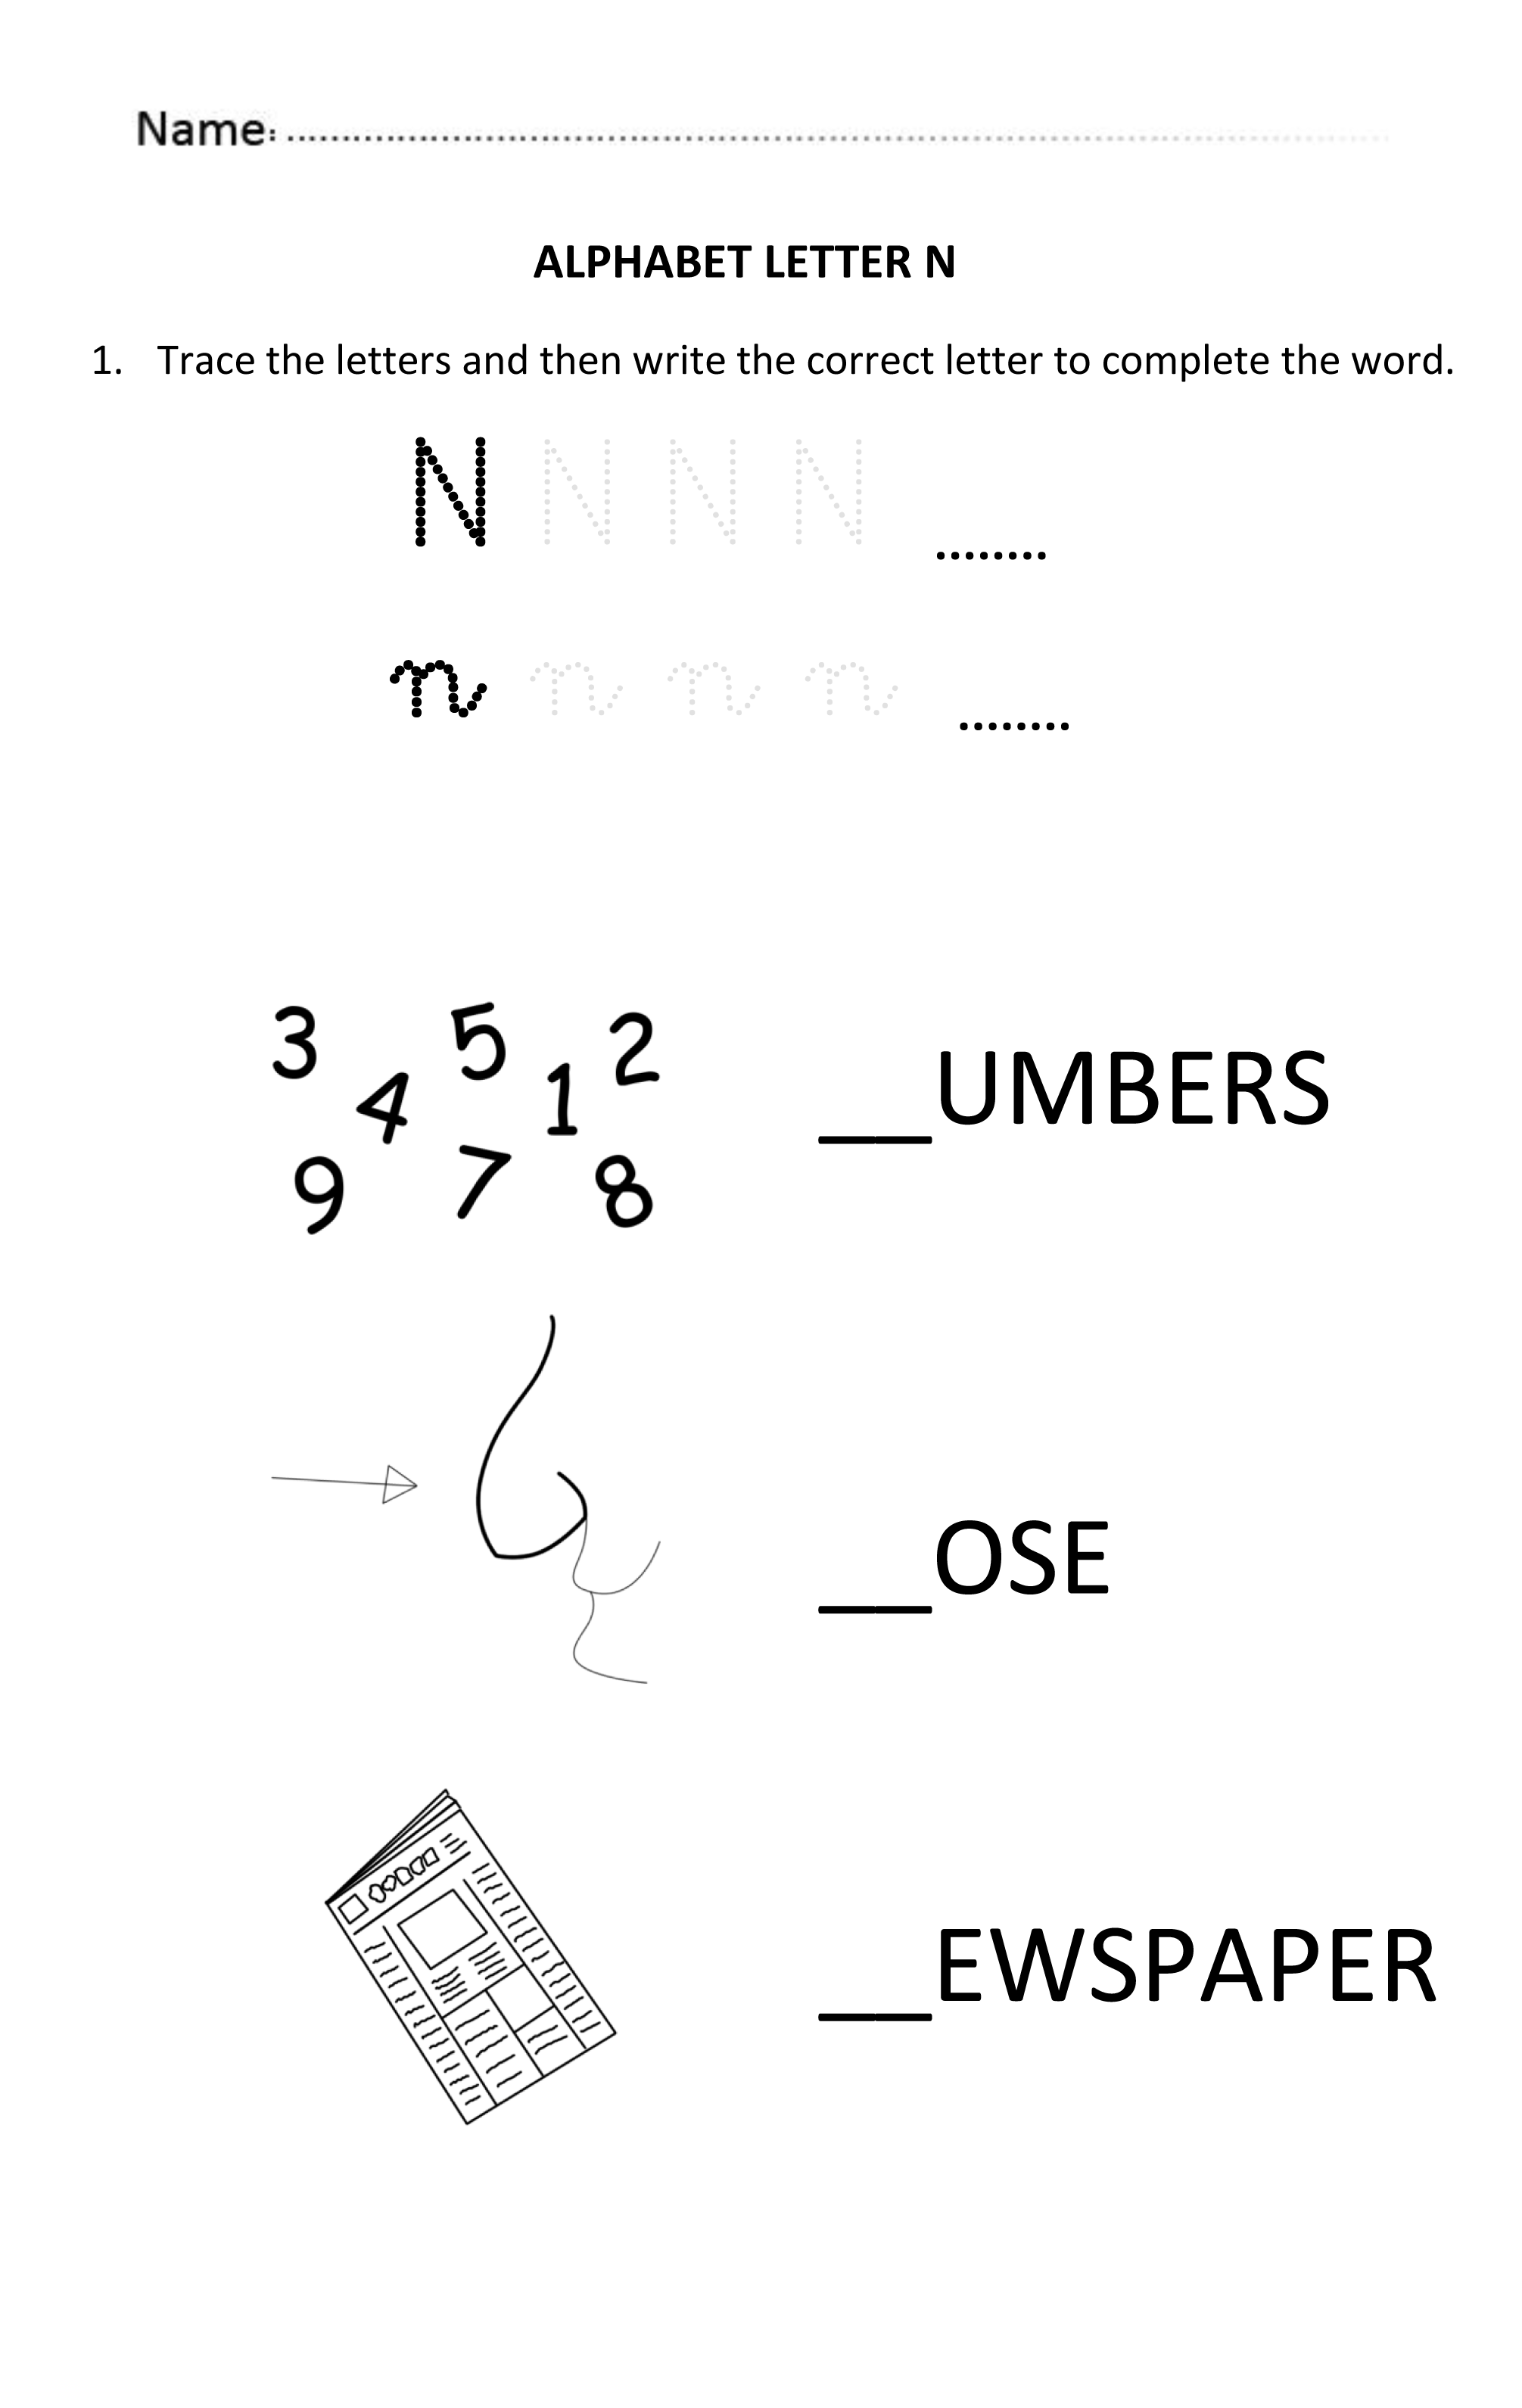 Learning And Writing Letter N For 5 And 6 Years Old Students throughout Alphabet Worksheets For Older Students